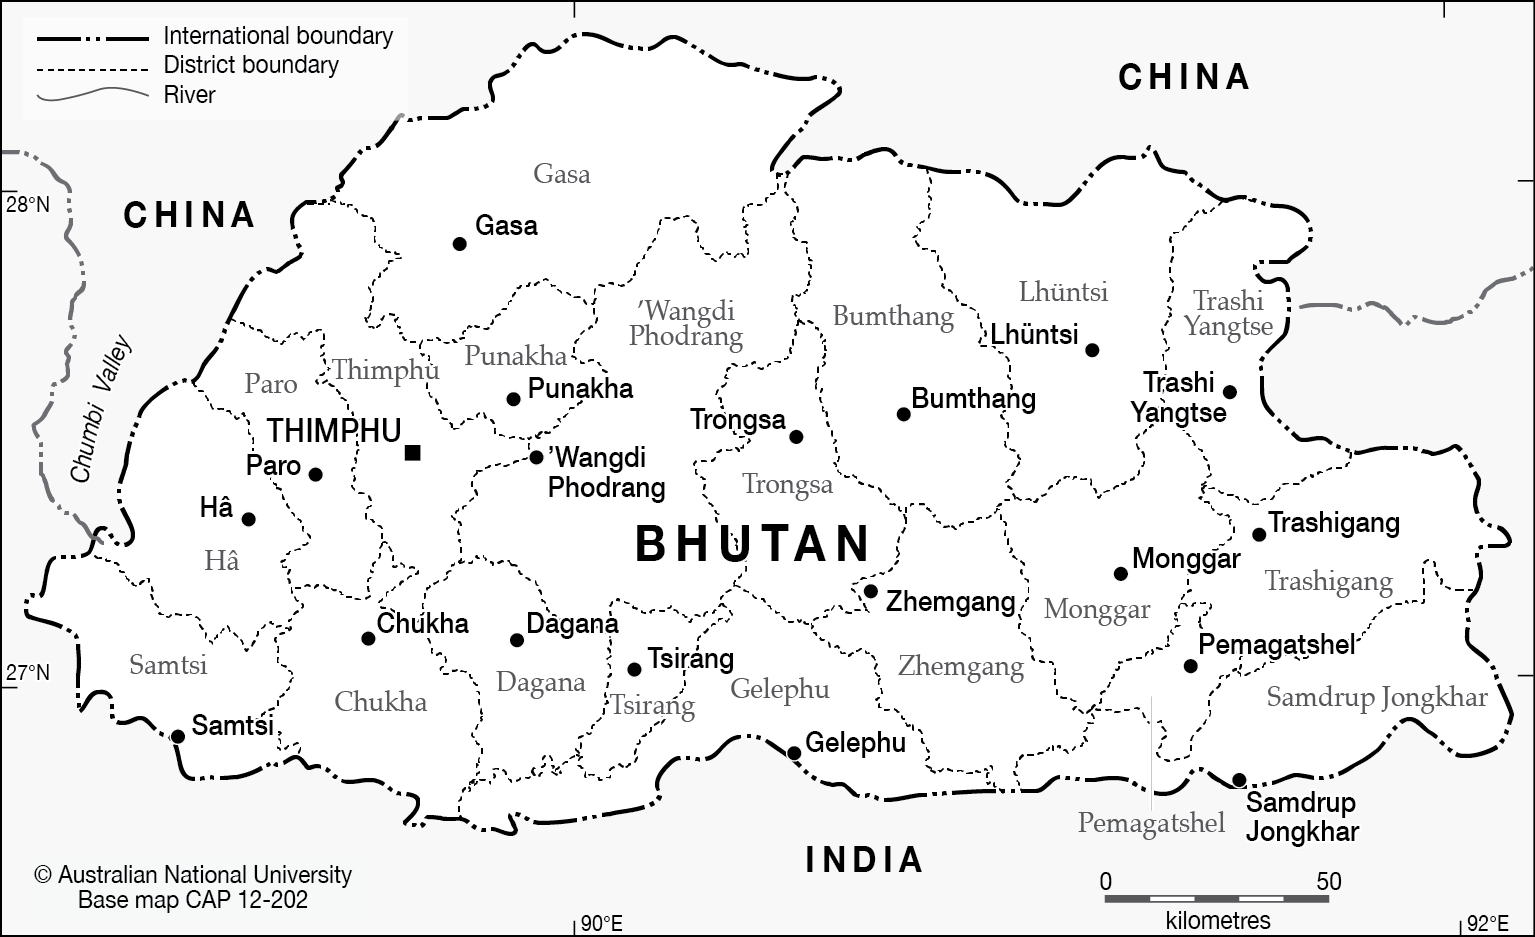 Bhutan base cartogis services maps online anu kb elevation map png 188 mb gumiabroncs